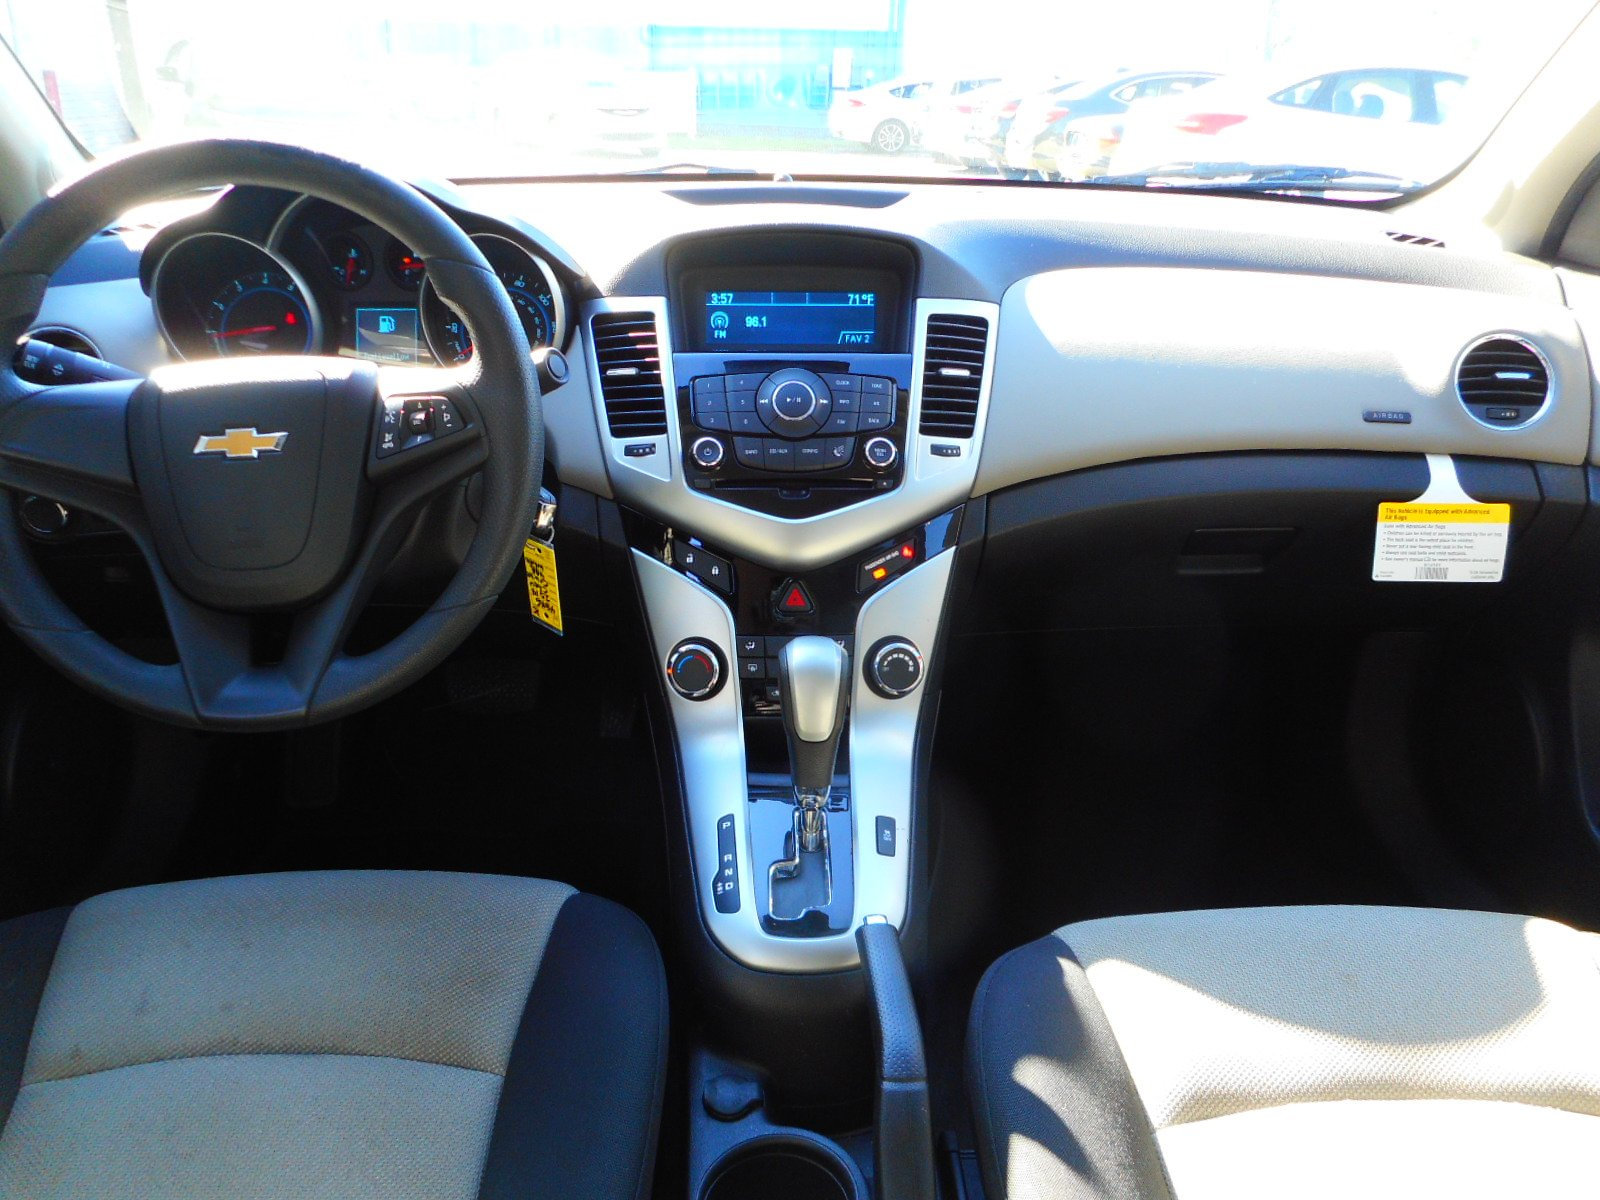 Chevrolet Cruze Owners Manual: Center Console Storage